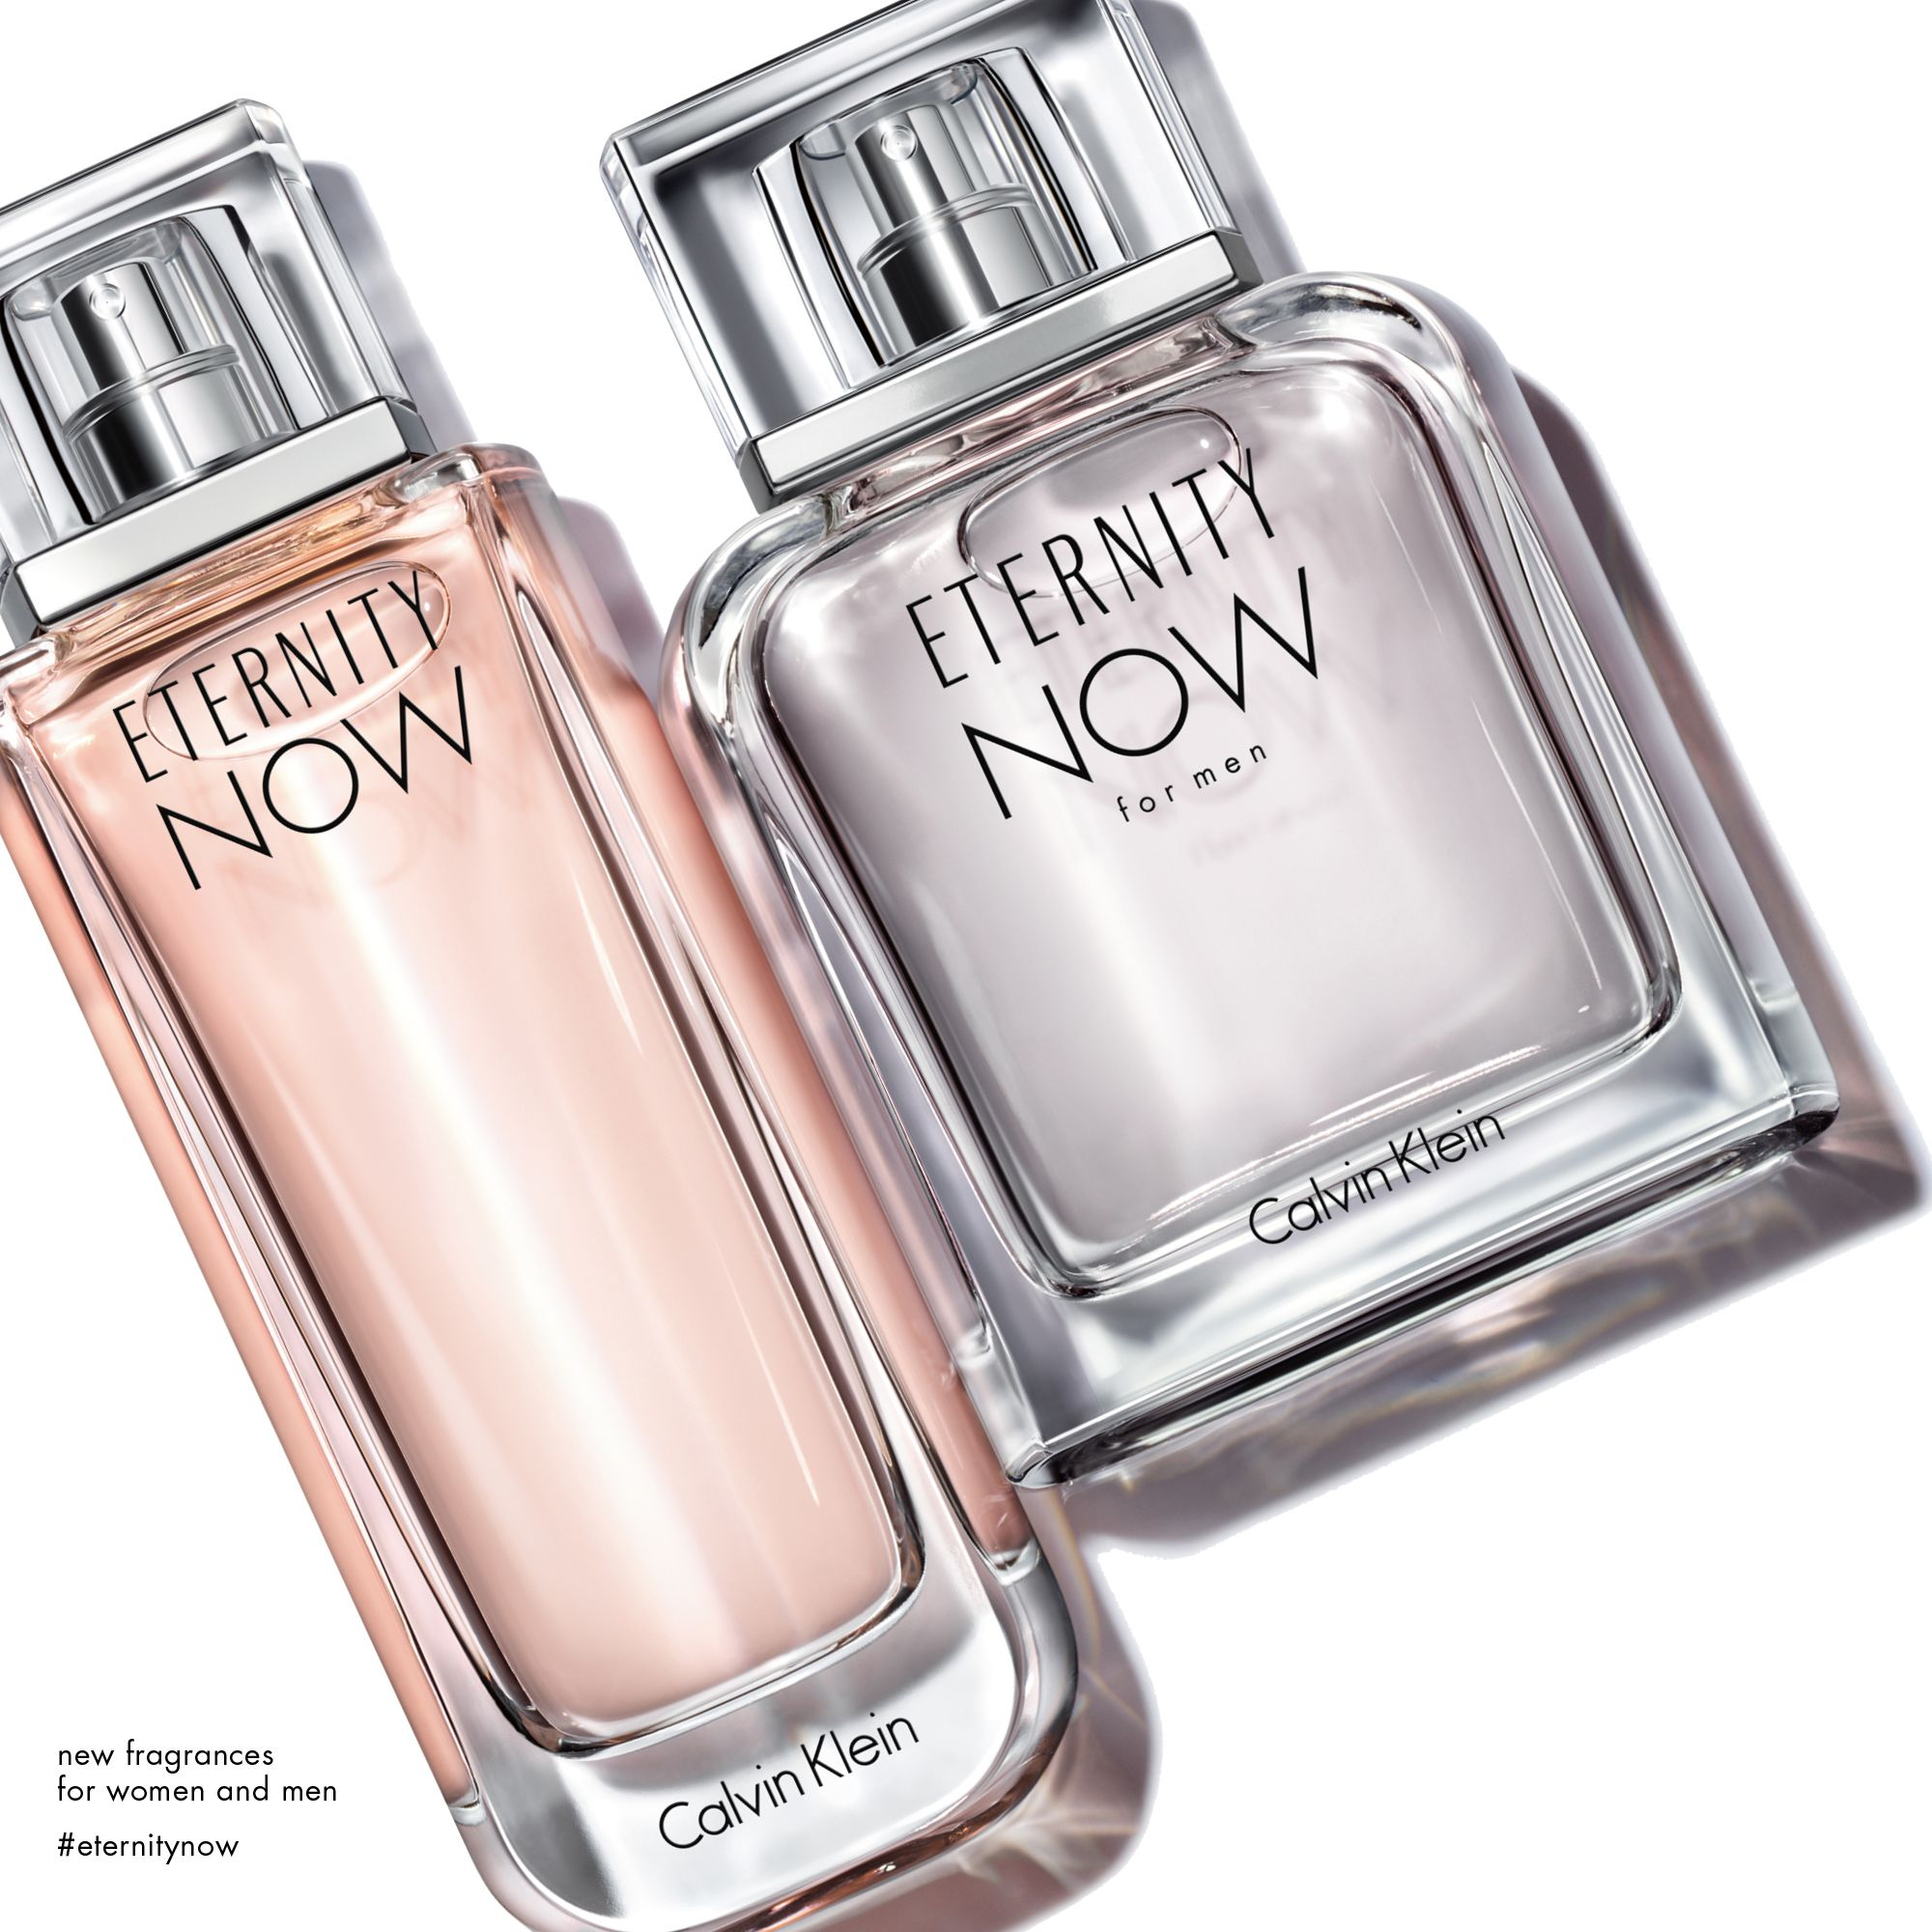 The ETERNITY NOW Calvin Klein fragrance for him + her features energizing  fruit scents wrapped in warm notes. Forever starts now.  ETERNITYNOW b10f0caf86